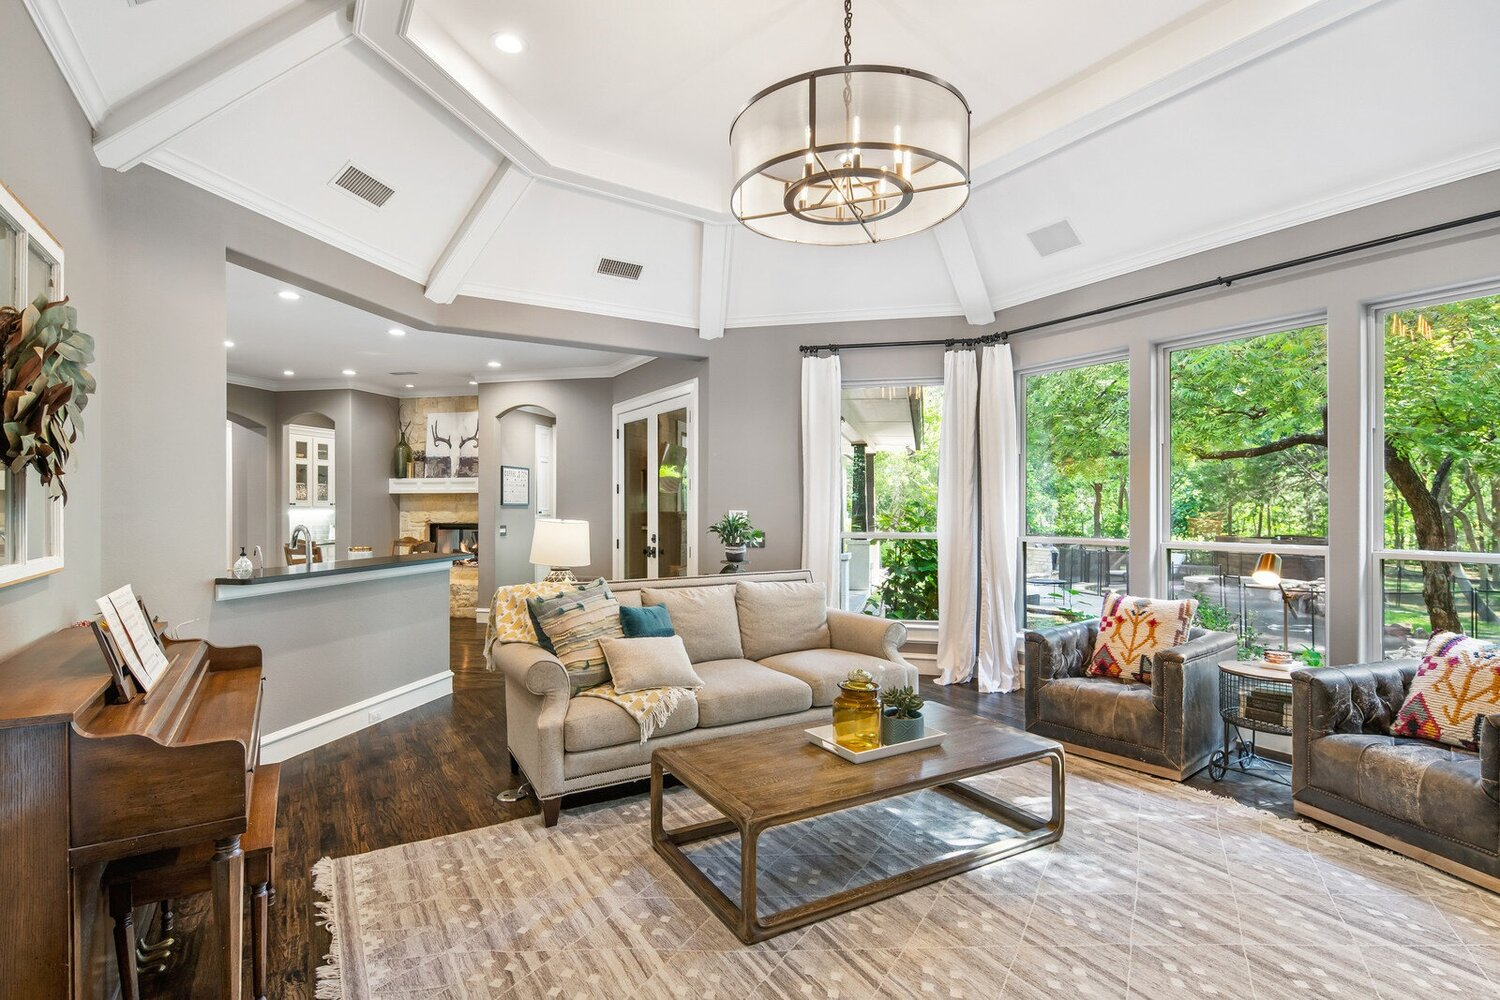 Maximize Your Home's Potential with Professional Interior Design Services